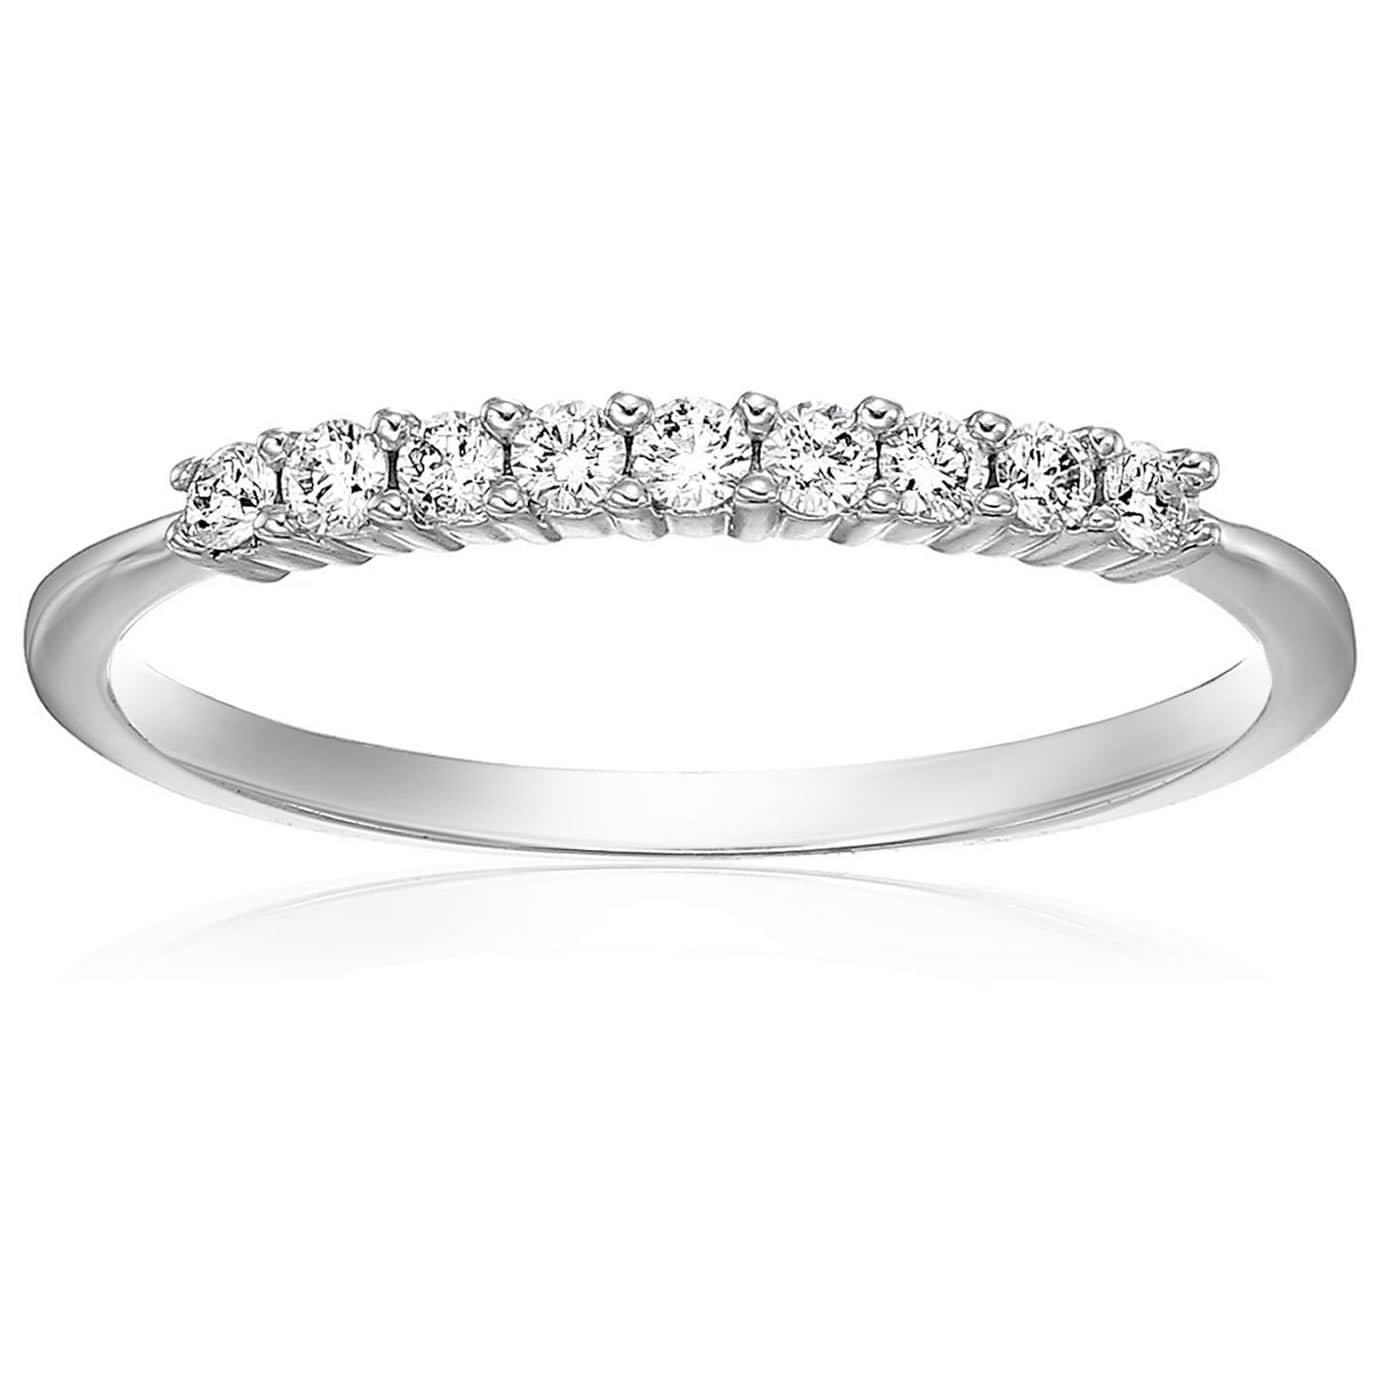 G-H,I2-I3 Diamond Wedding Band in Sterling Silver 1//5 cttw, Size-4